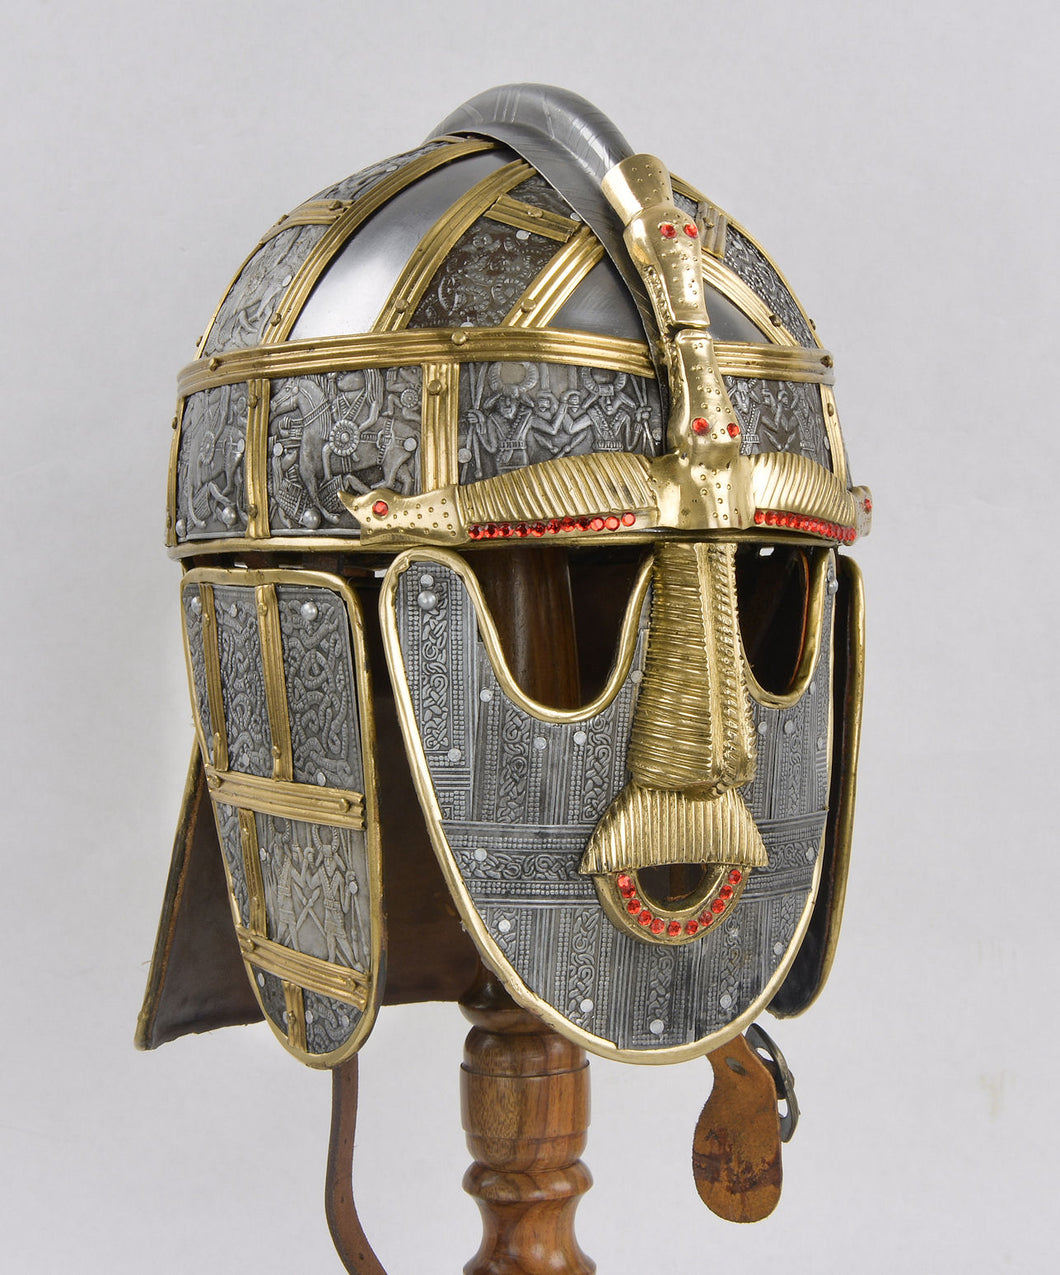 Sutton Hoo Deluxe Helm - 18 Gauge Steel